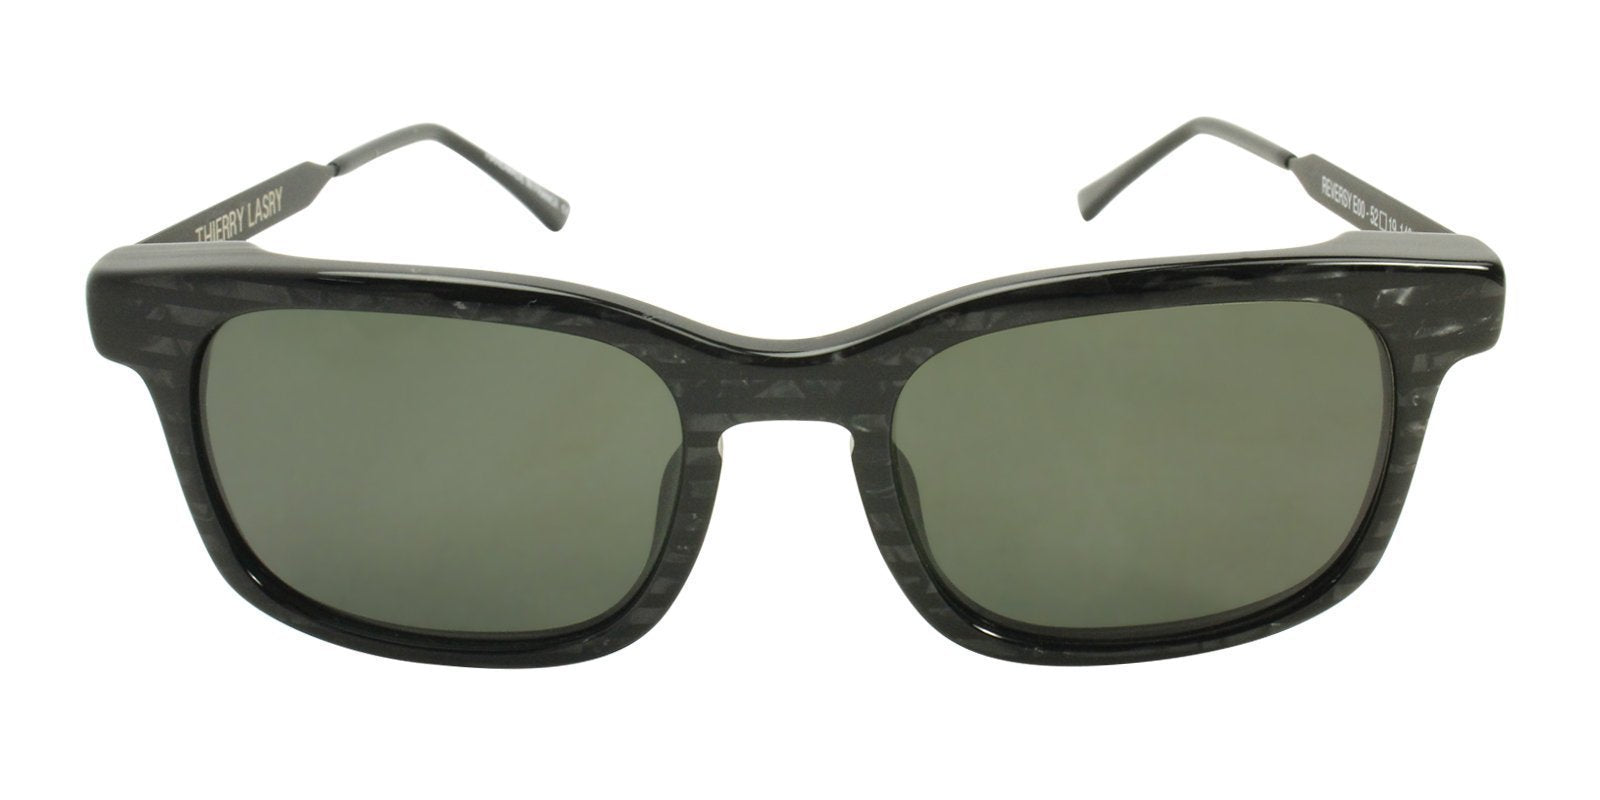 Thierry Lasry - Reversy Black Rectangular Men, Women Sunglasses - 52mm-Sunglasses-Designer Eyes